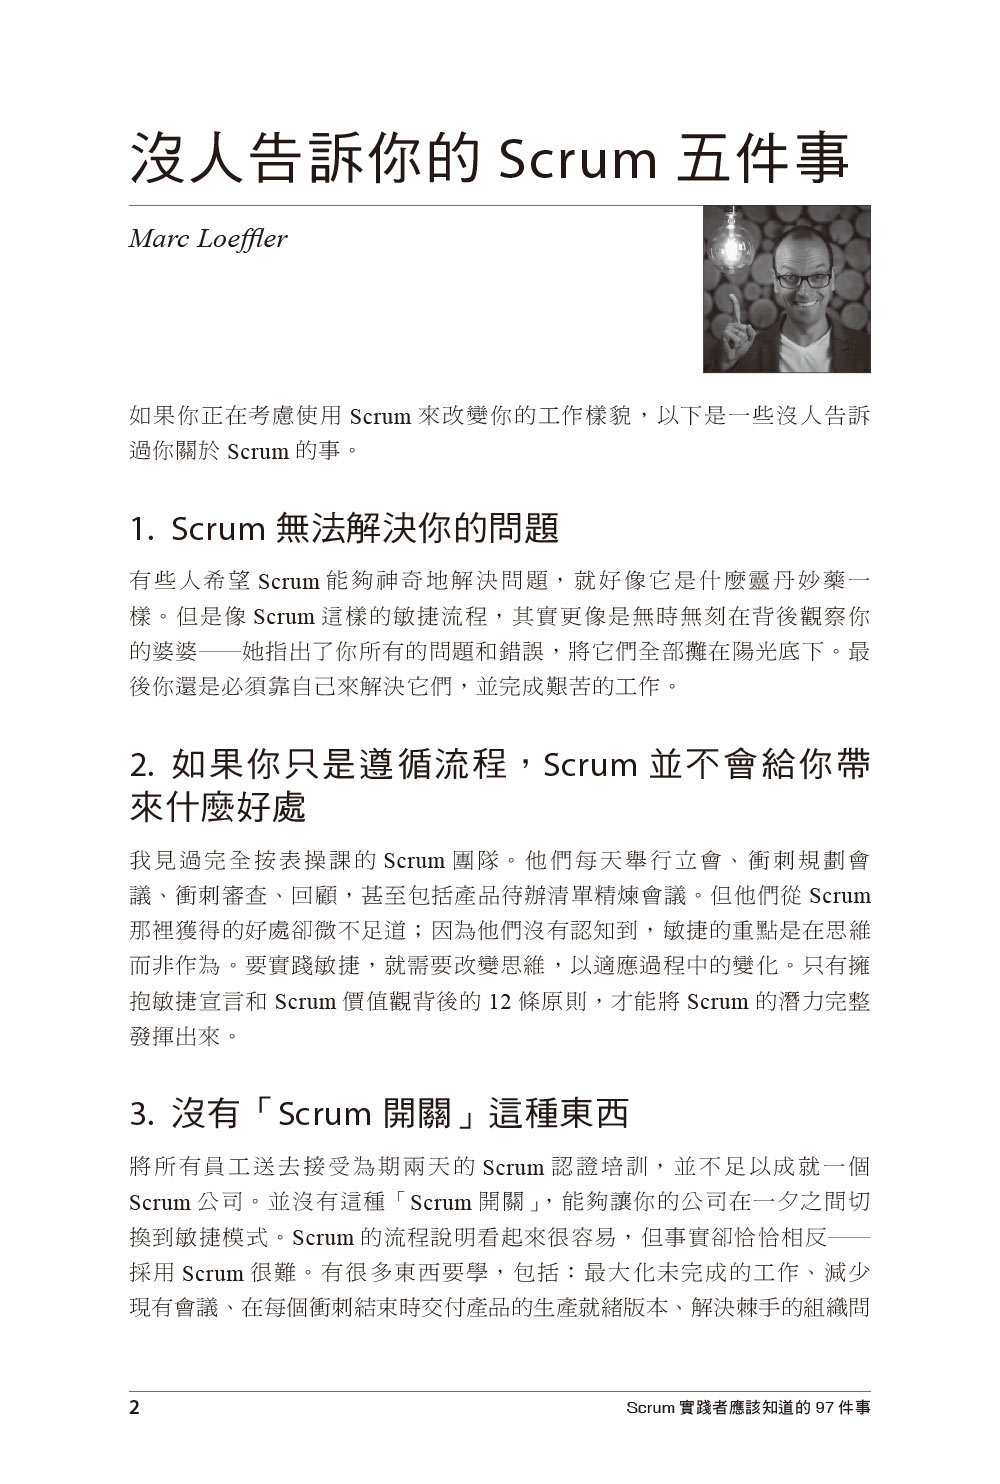 Scrum 實踐者應該知道的 97件事|來自專家的集體智慧 (97 Things Every Scrum Practitioner Should Know)-preview-5